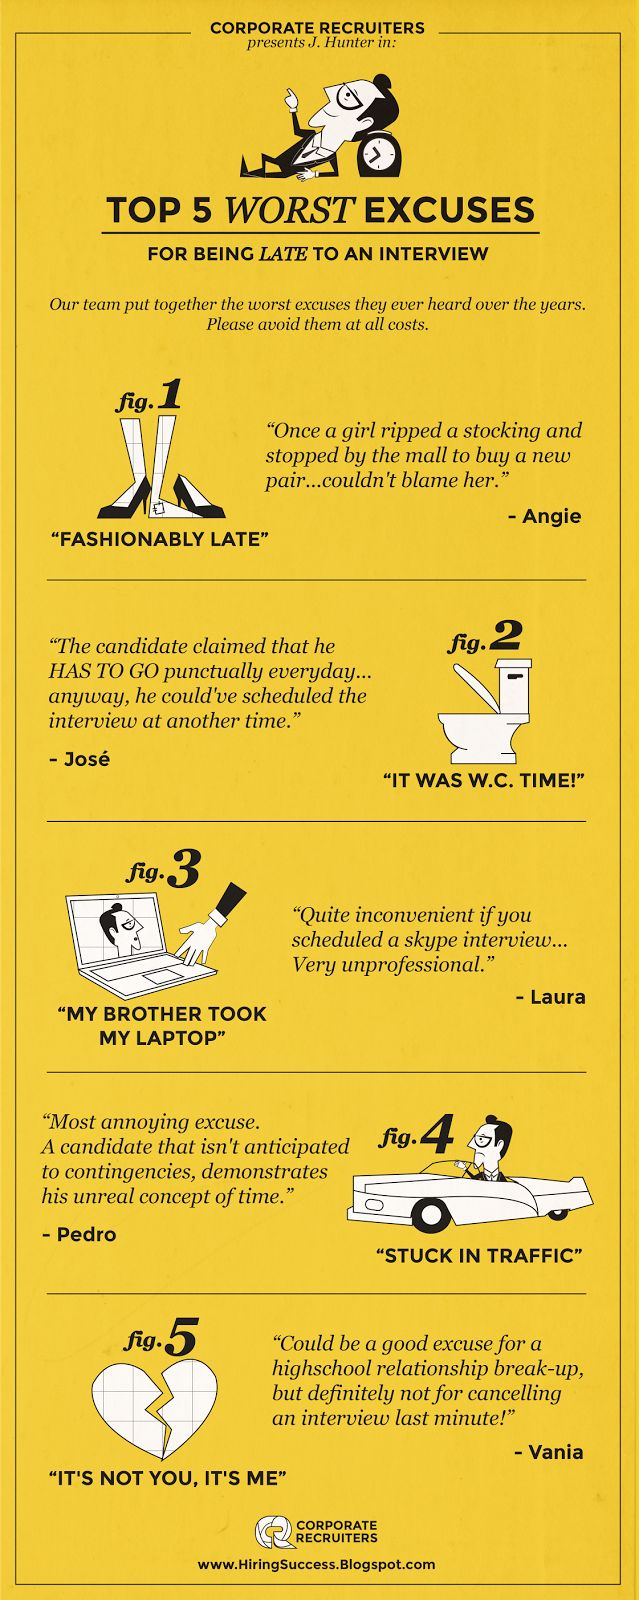 Top 5 Worst Excuses For Being Late To An Interview